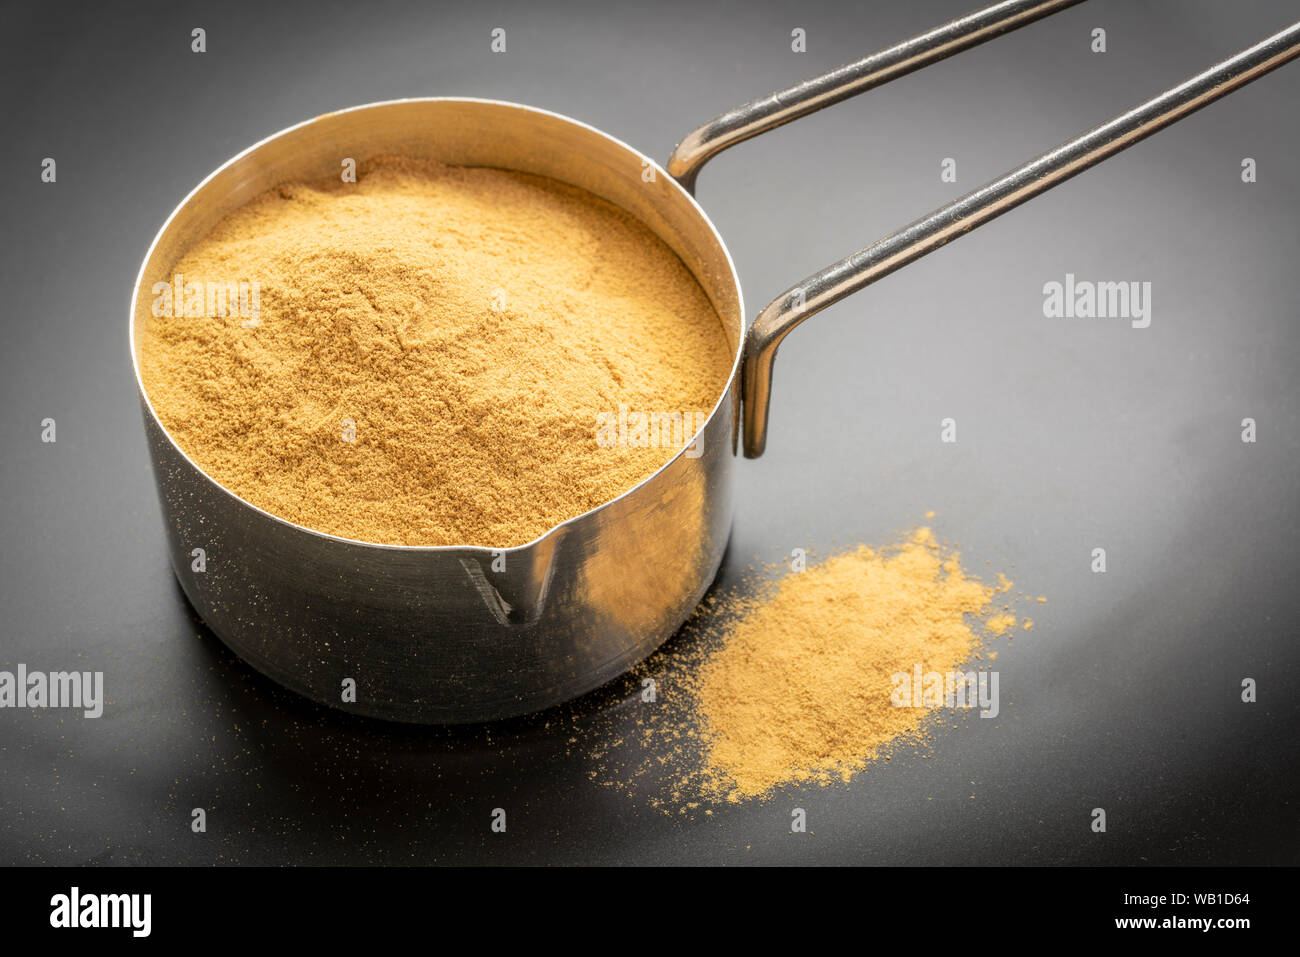 Green Coffee Beans Powder In A Metal Measuring Scoop Stock Photo